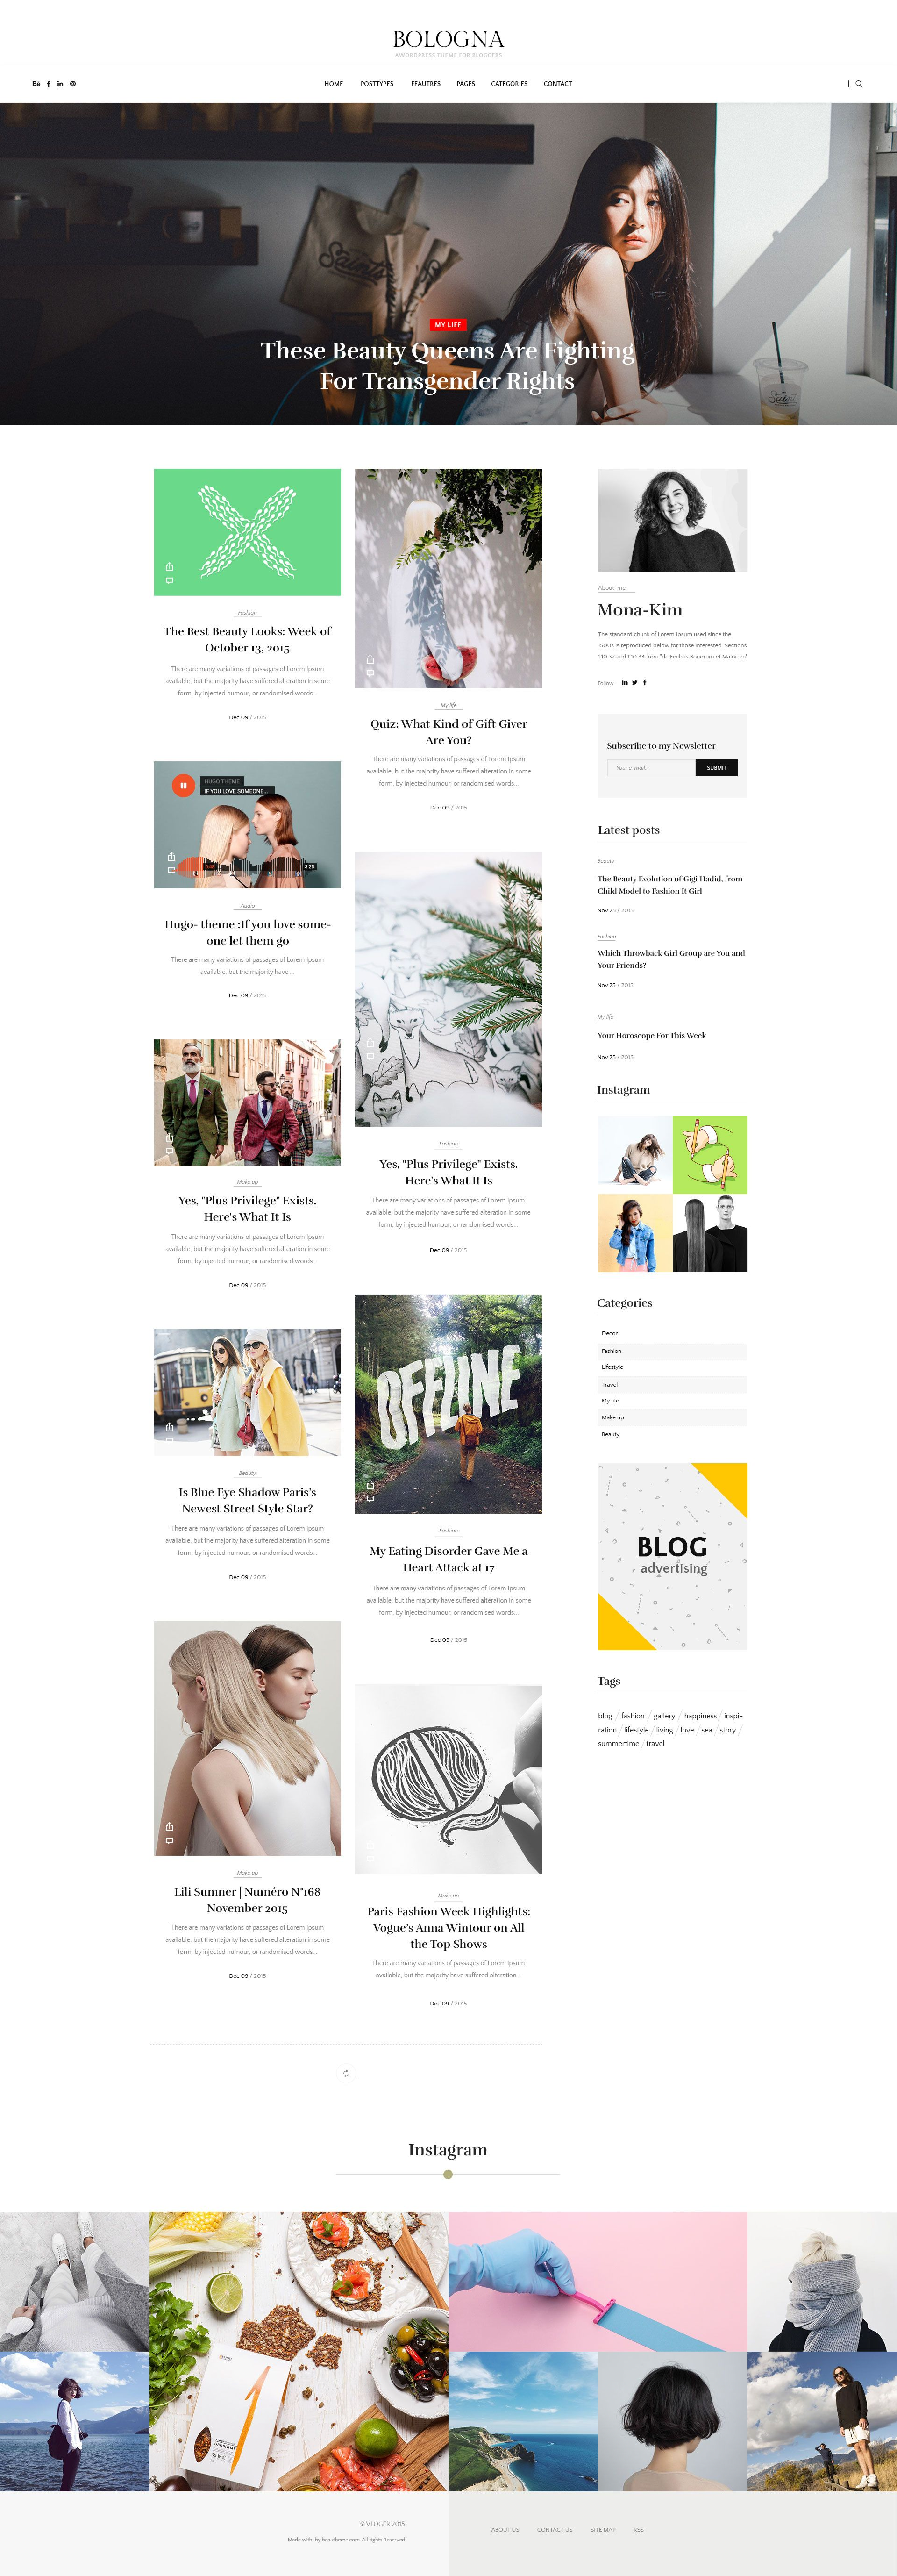 Free PSD Design File Of Bologna WordPress Theme More PSD ...